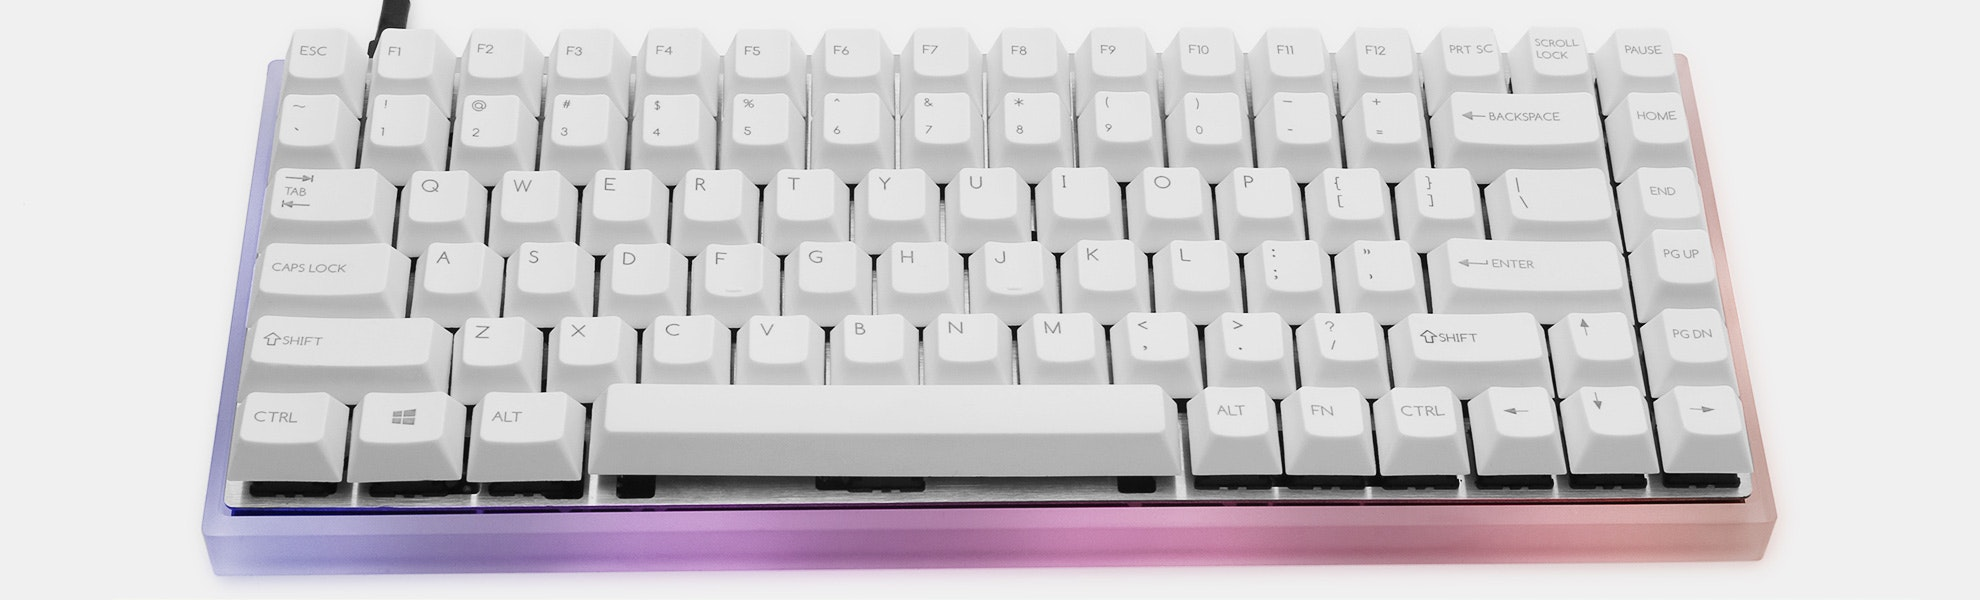 XD84 Custom Mechanical Keyboard Kit